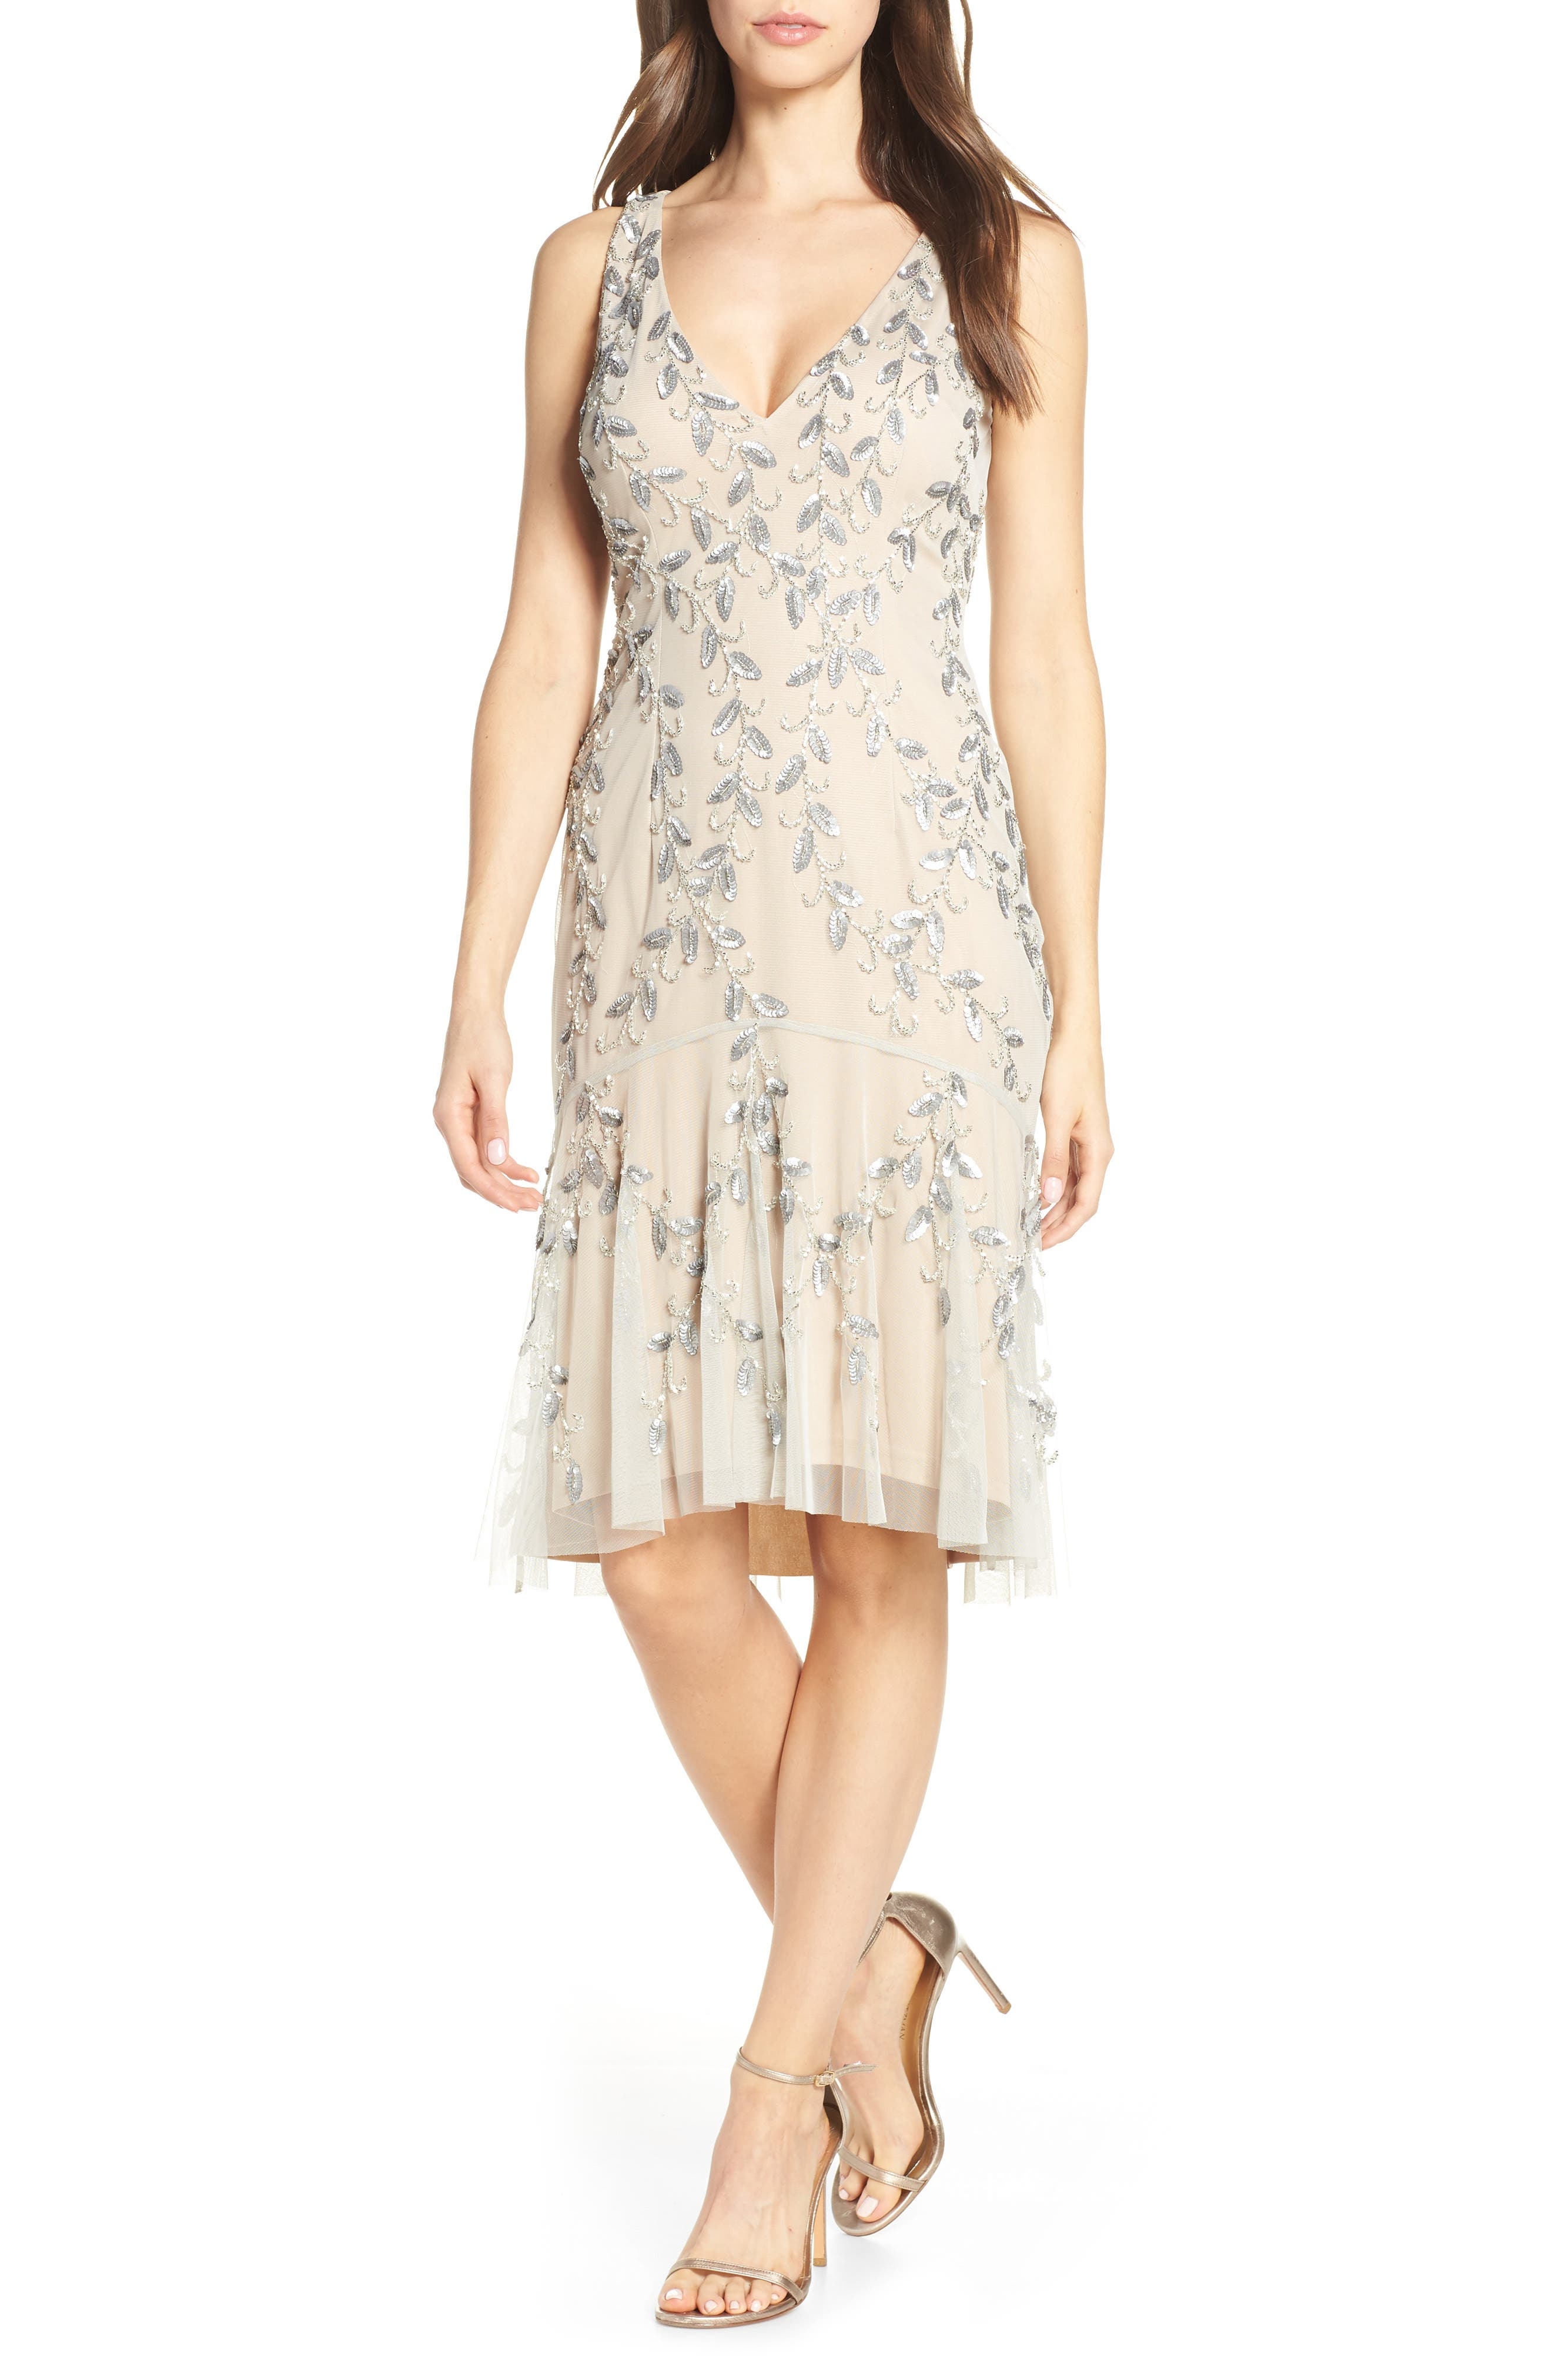 Adrianna Papell Beaded Cocktail Dress, Metallic